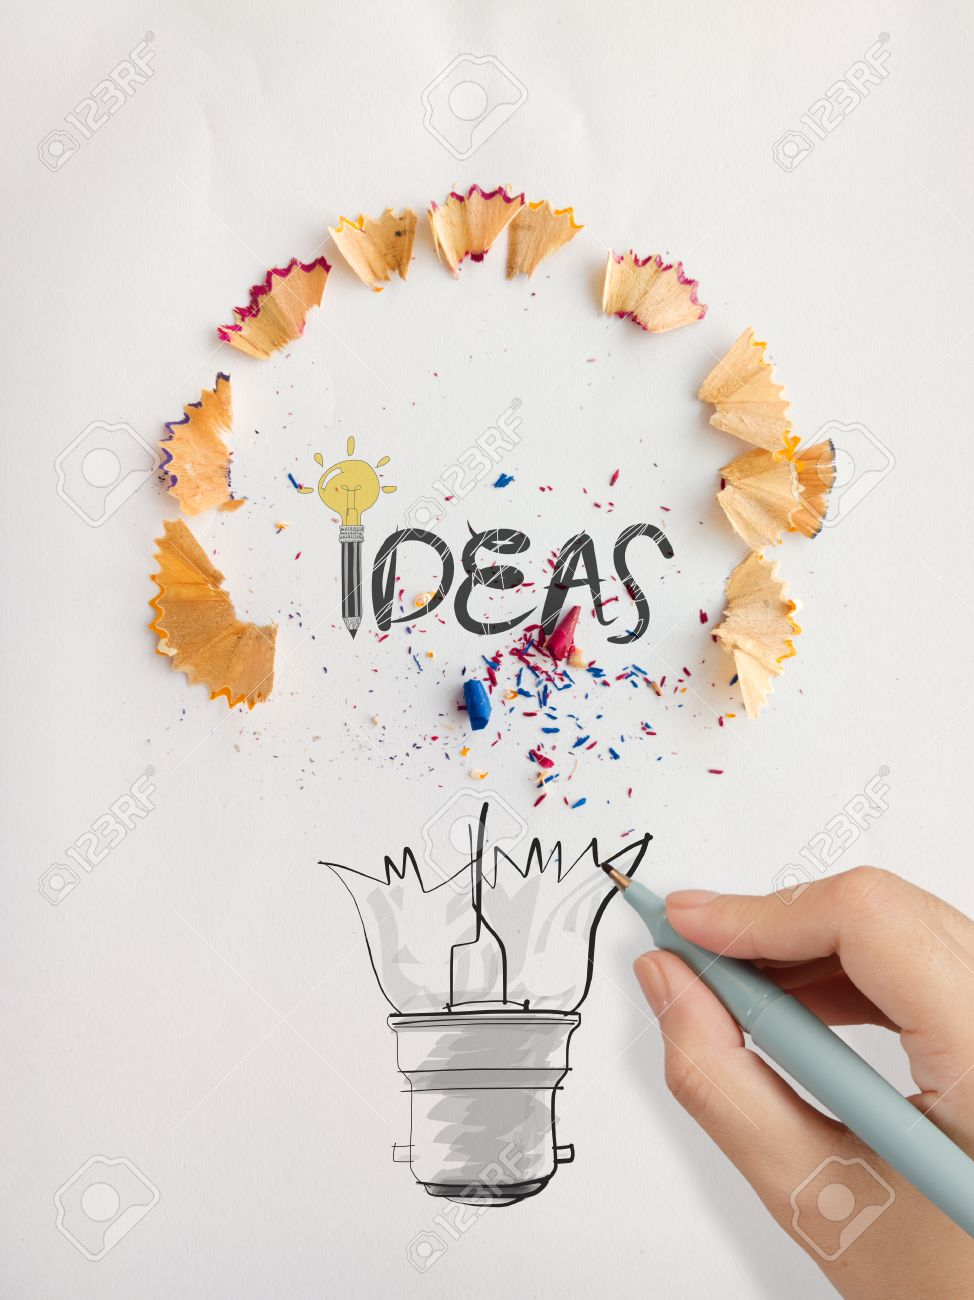 Design Idea the design idea and the ps process of the banana party Idea Design Stock Photo Hand Drawn Light Bulb Word Design Idea With Pencil Saw Dust On